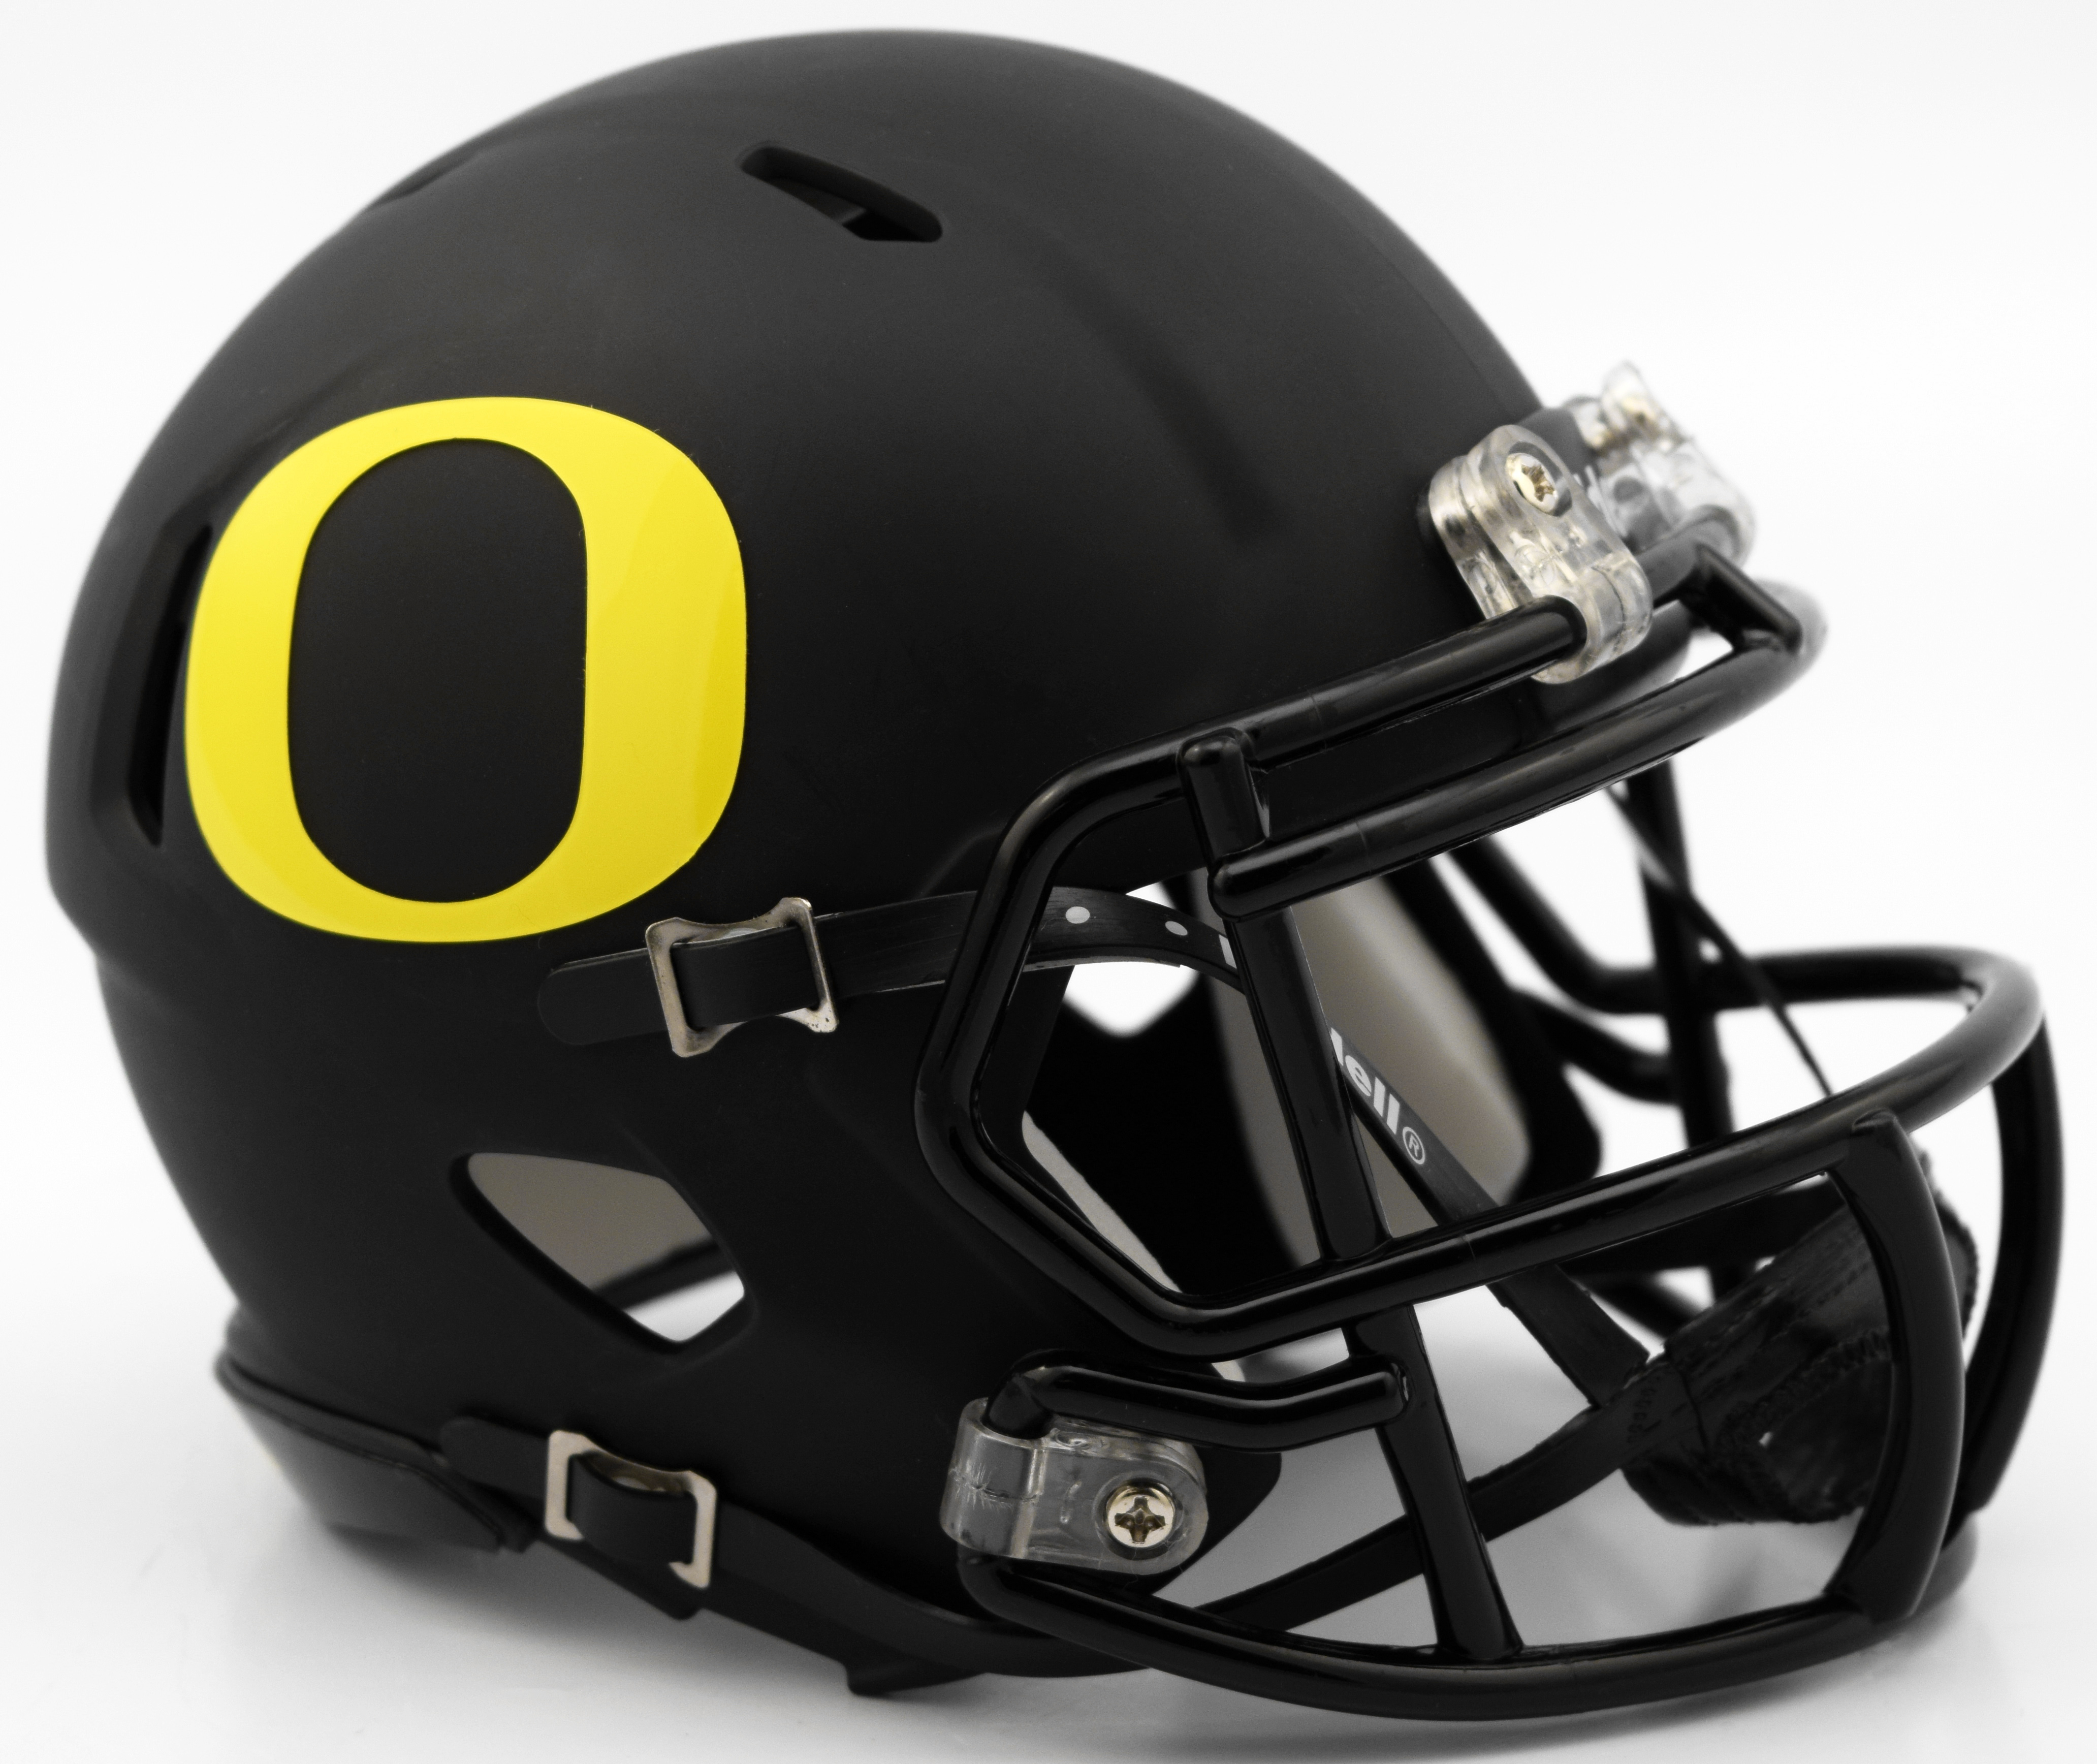 The Duck Store is the bookstore for the University of Oregon in Eugene, Oregon, United States. It is a not-for-profit corporation governed by an elected Board of Directors composed mostly of students.